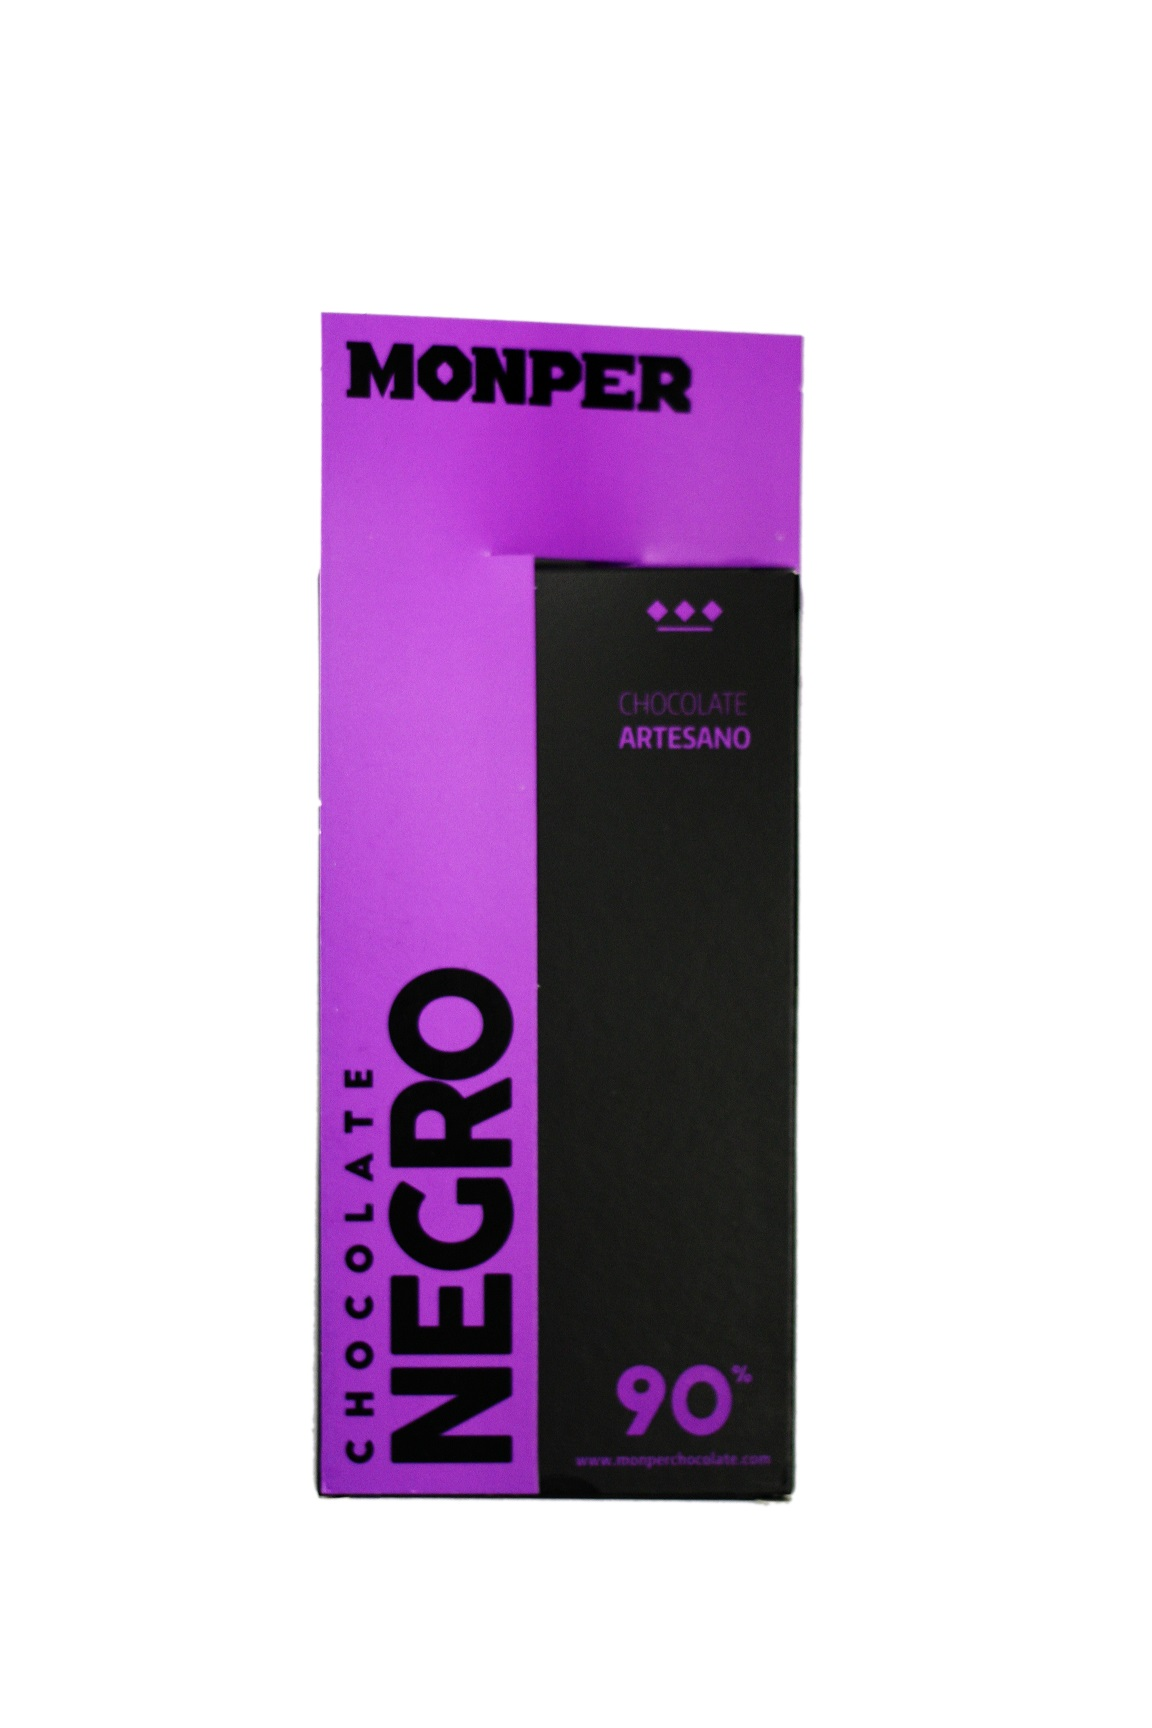 Chocolate Negro 90% Monper Chocolate